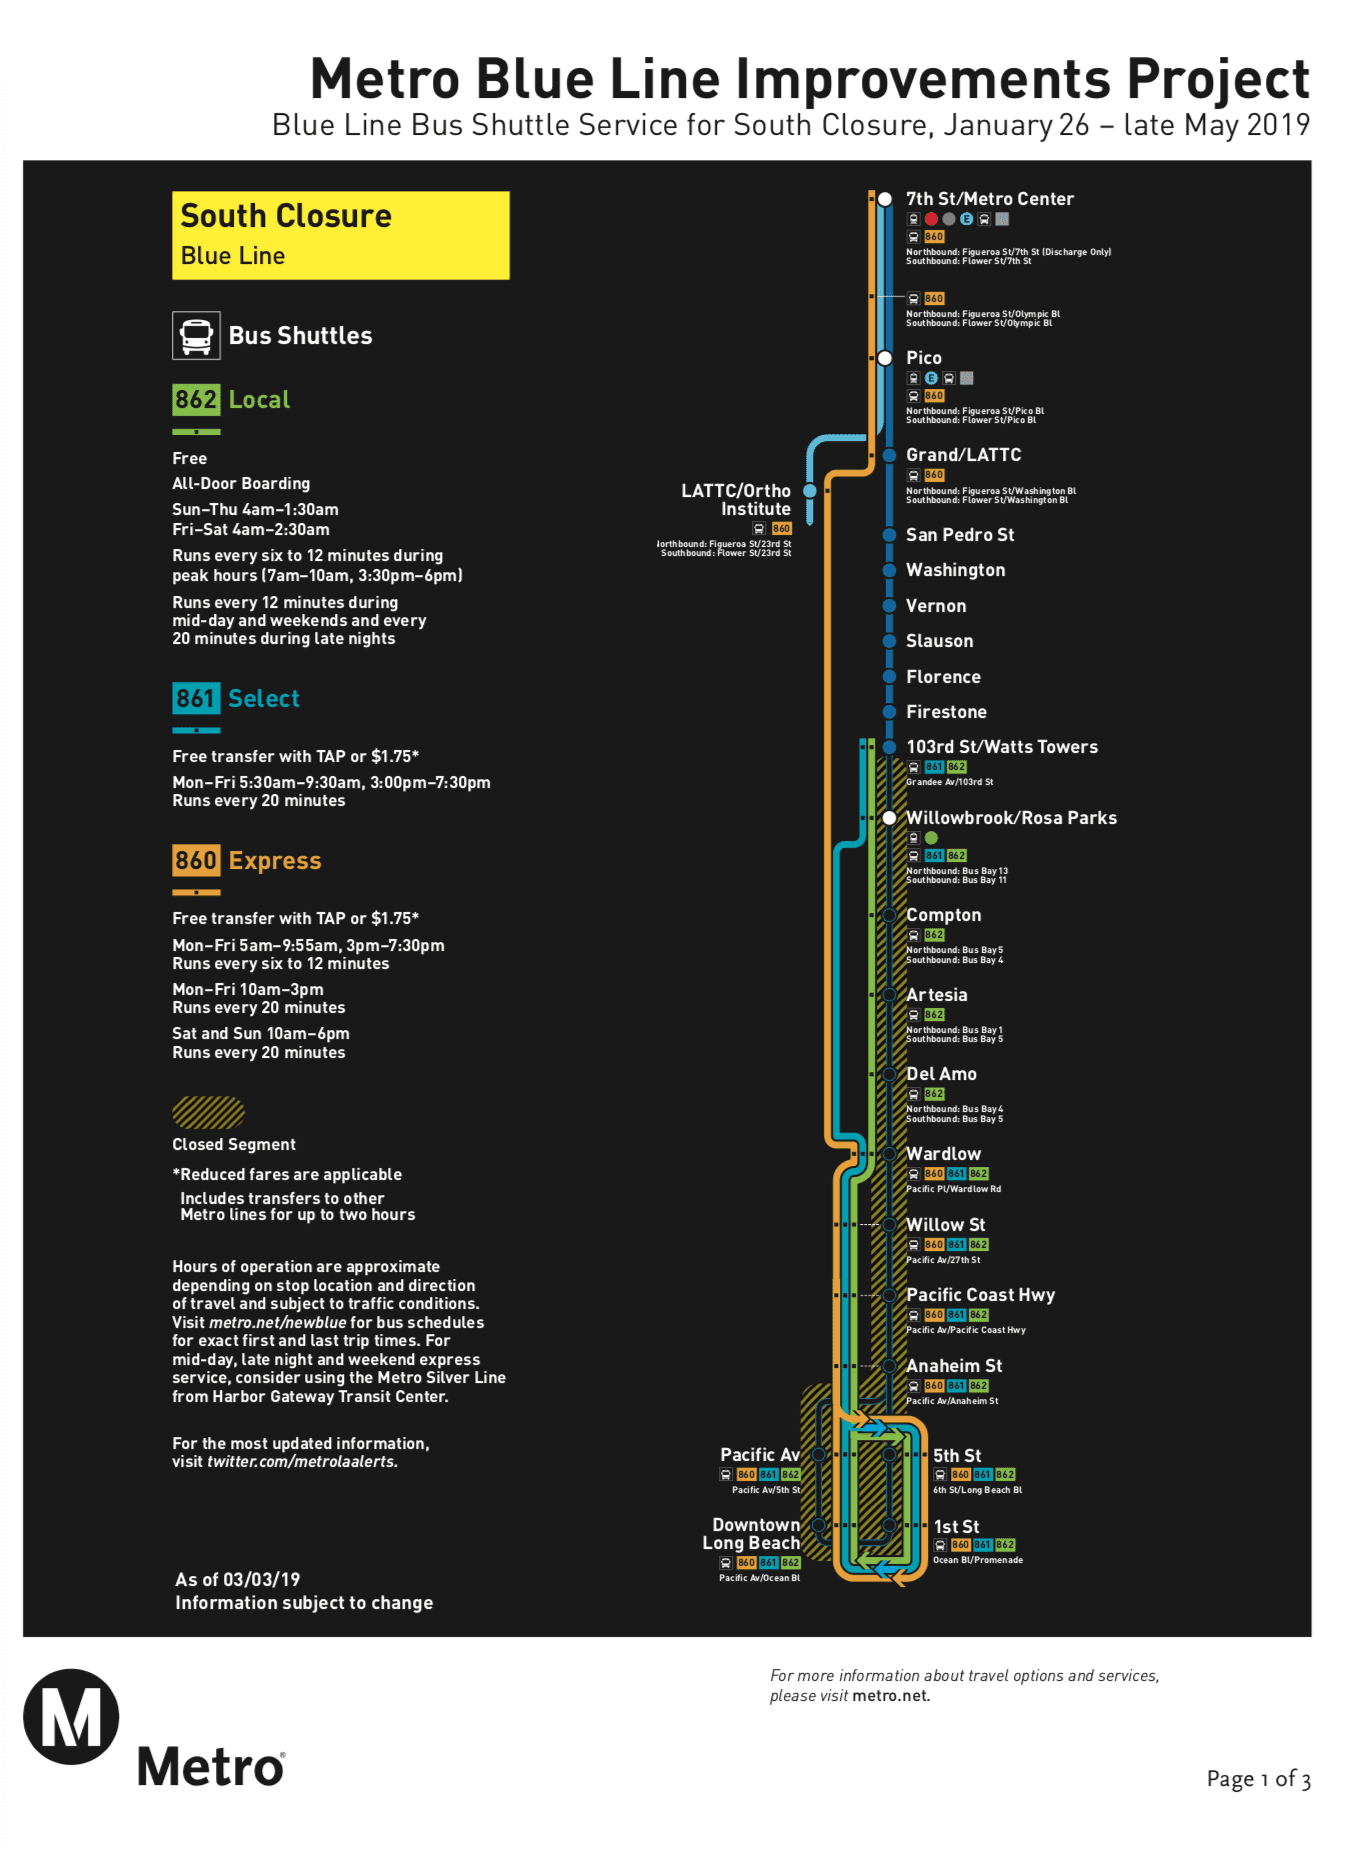 Blue Line south closure update - changes to shuttle schedules to start March 3 - The ...